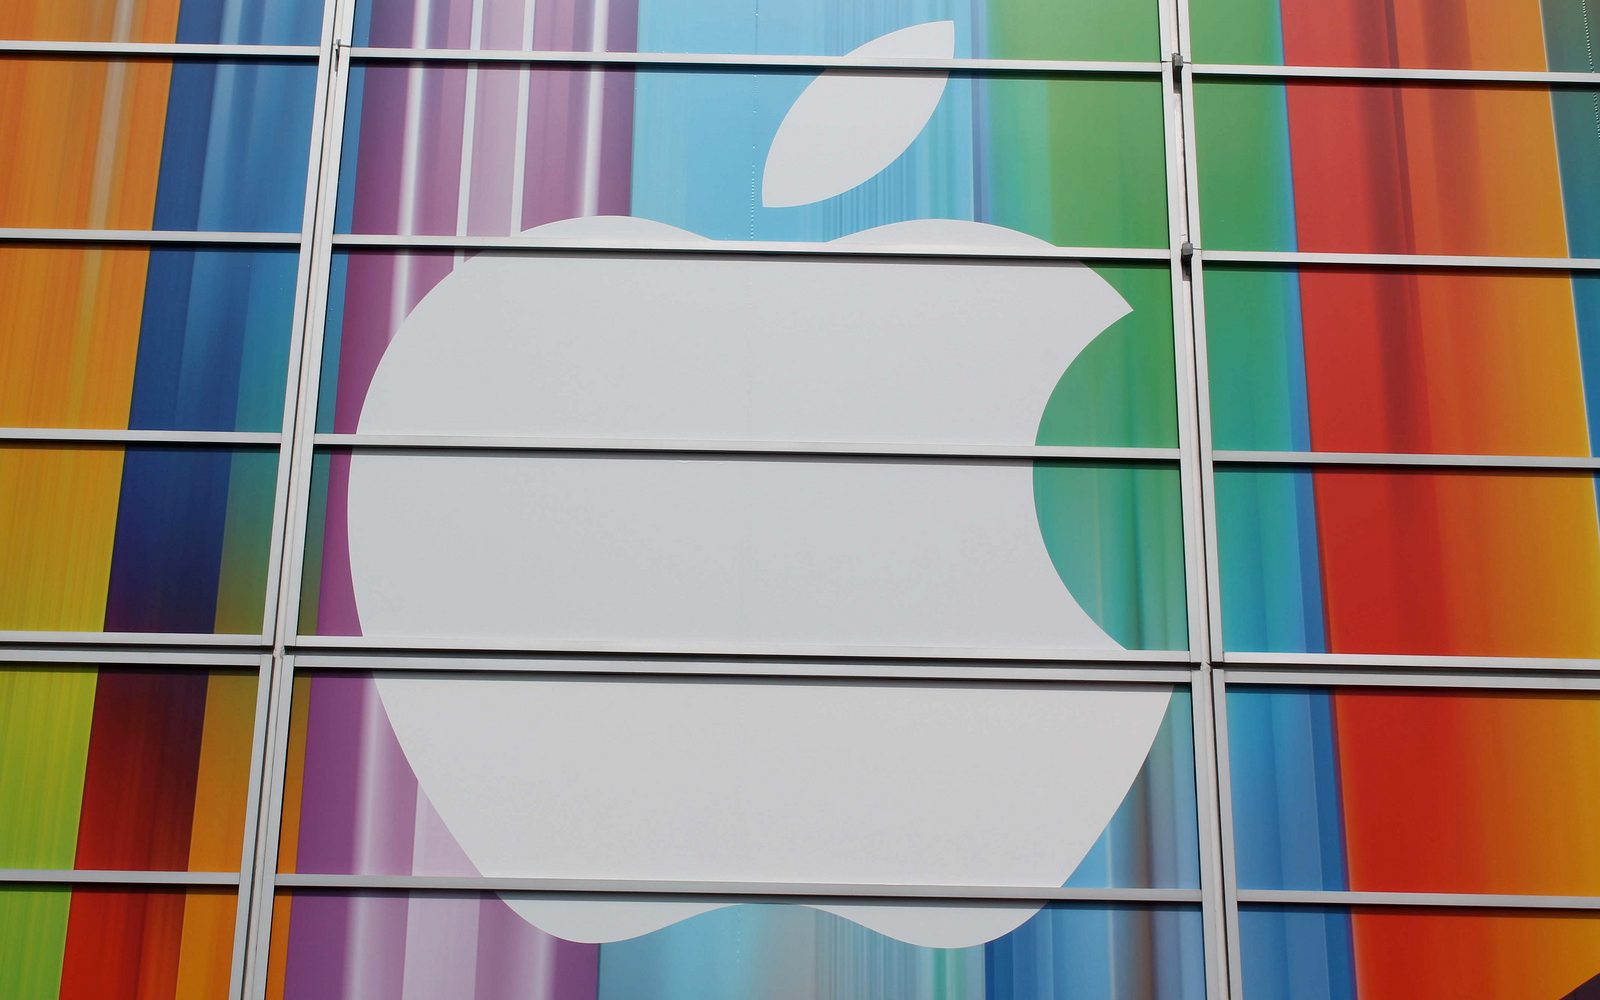 Coming from Apple in 2014: 12-inch Retina MacBook, sharper iPad, cheaper iMac?